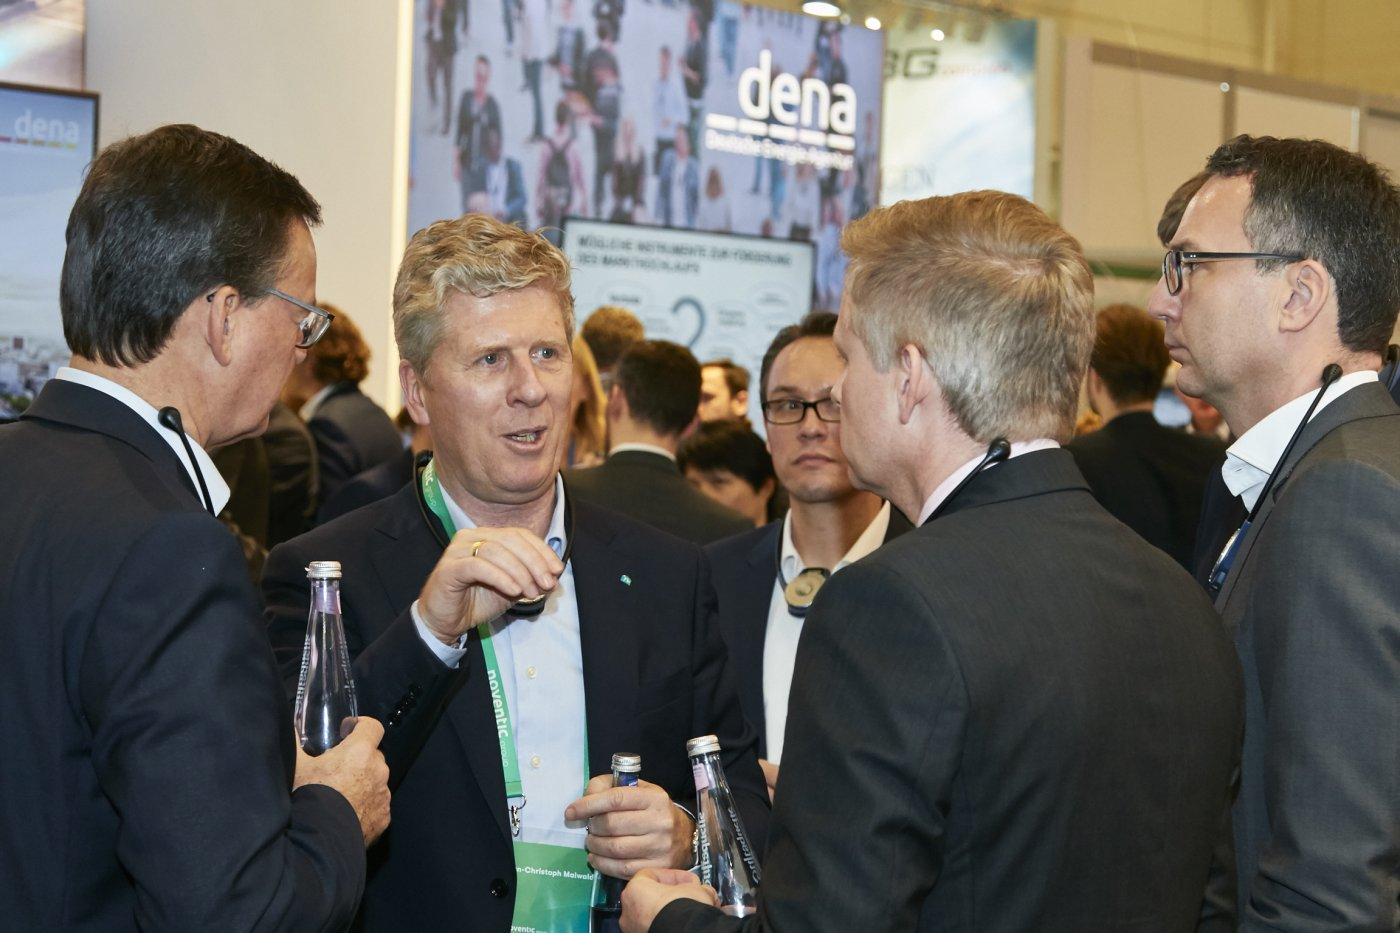 Discussion at the dena noventic group stand e-world 2019